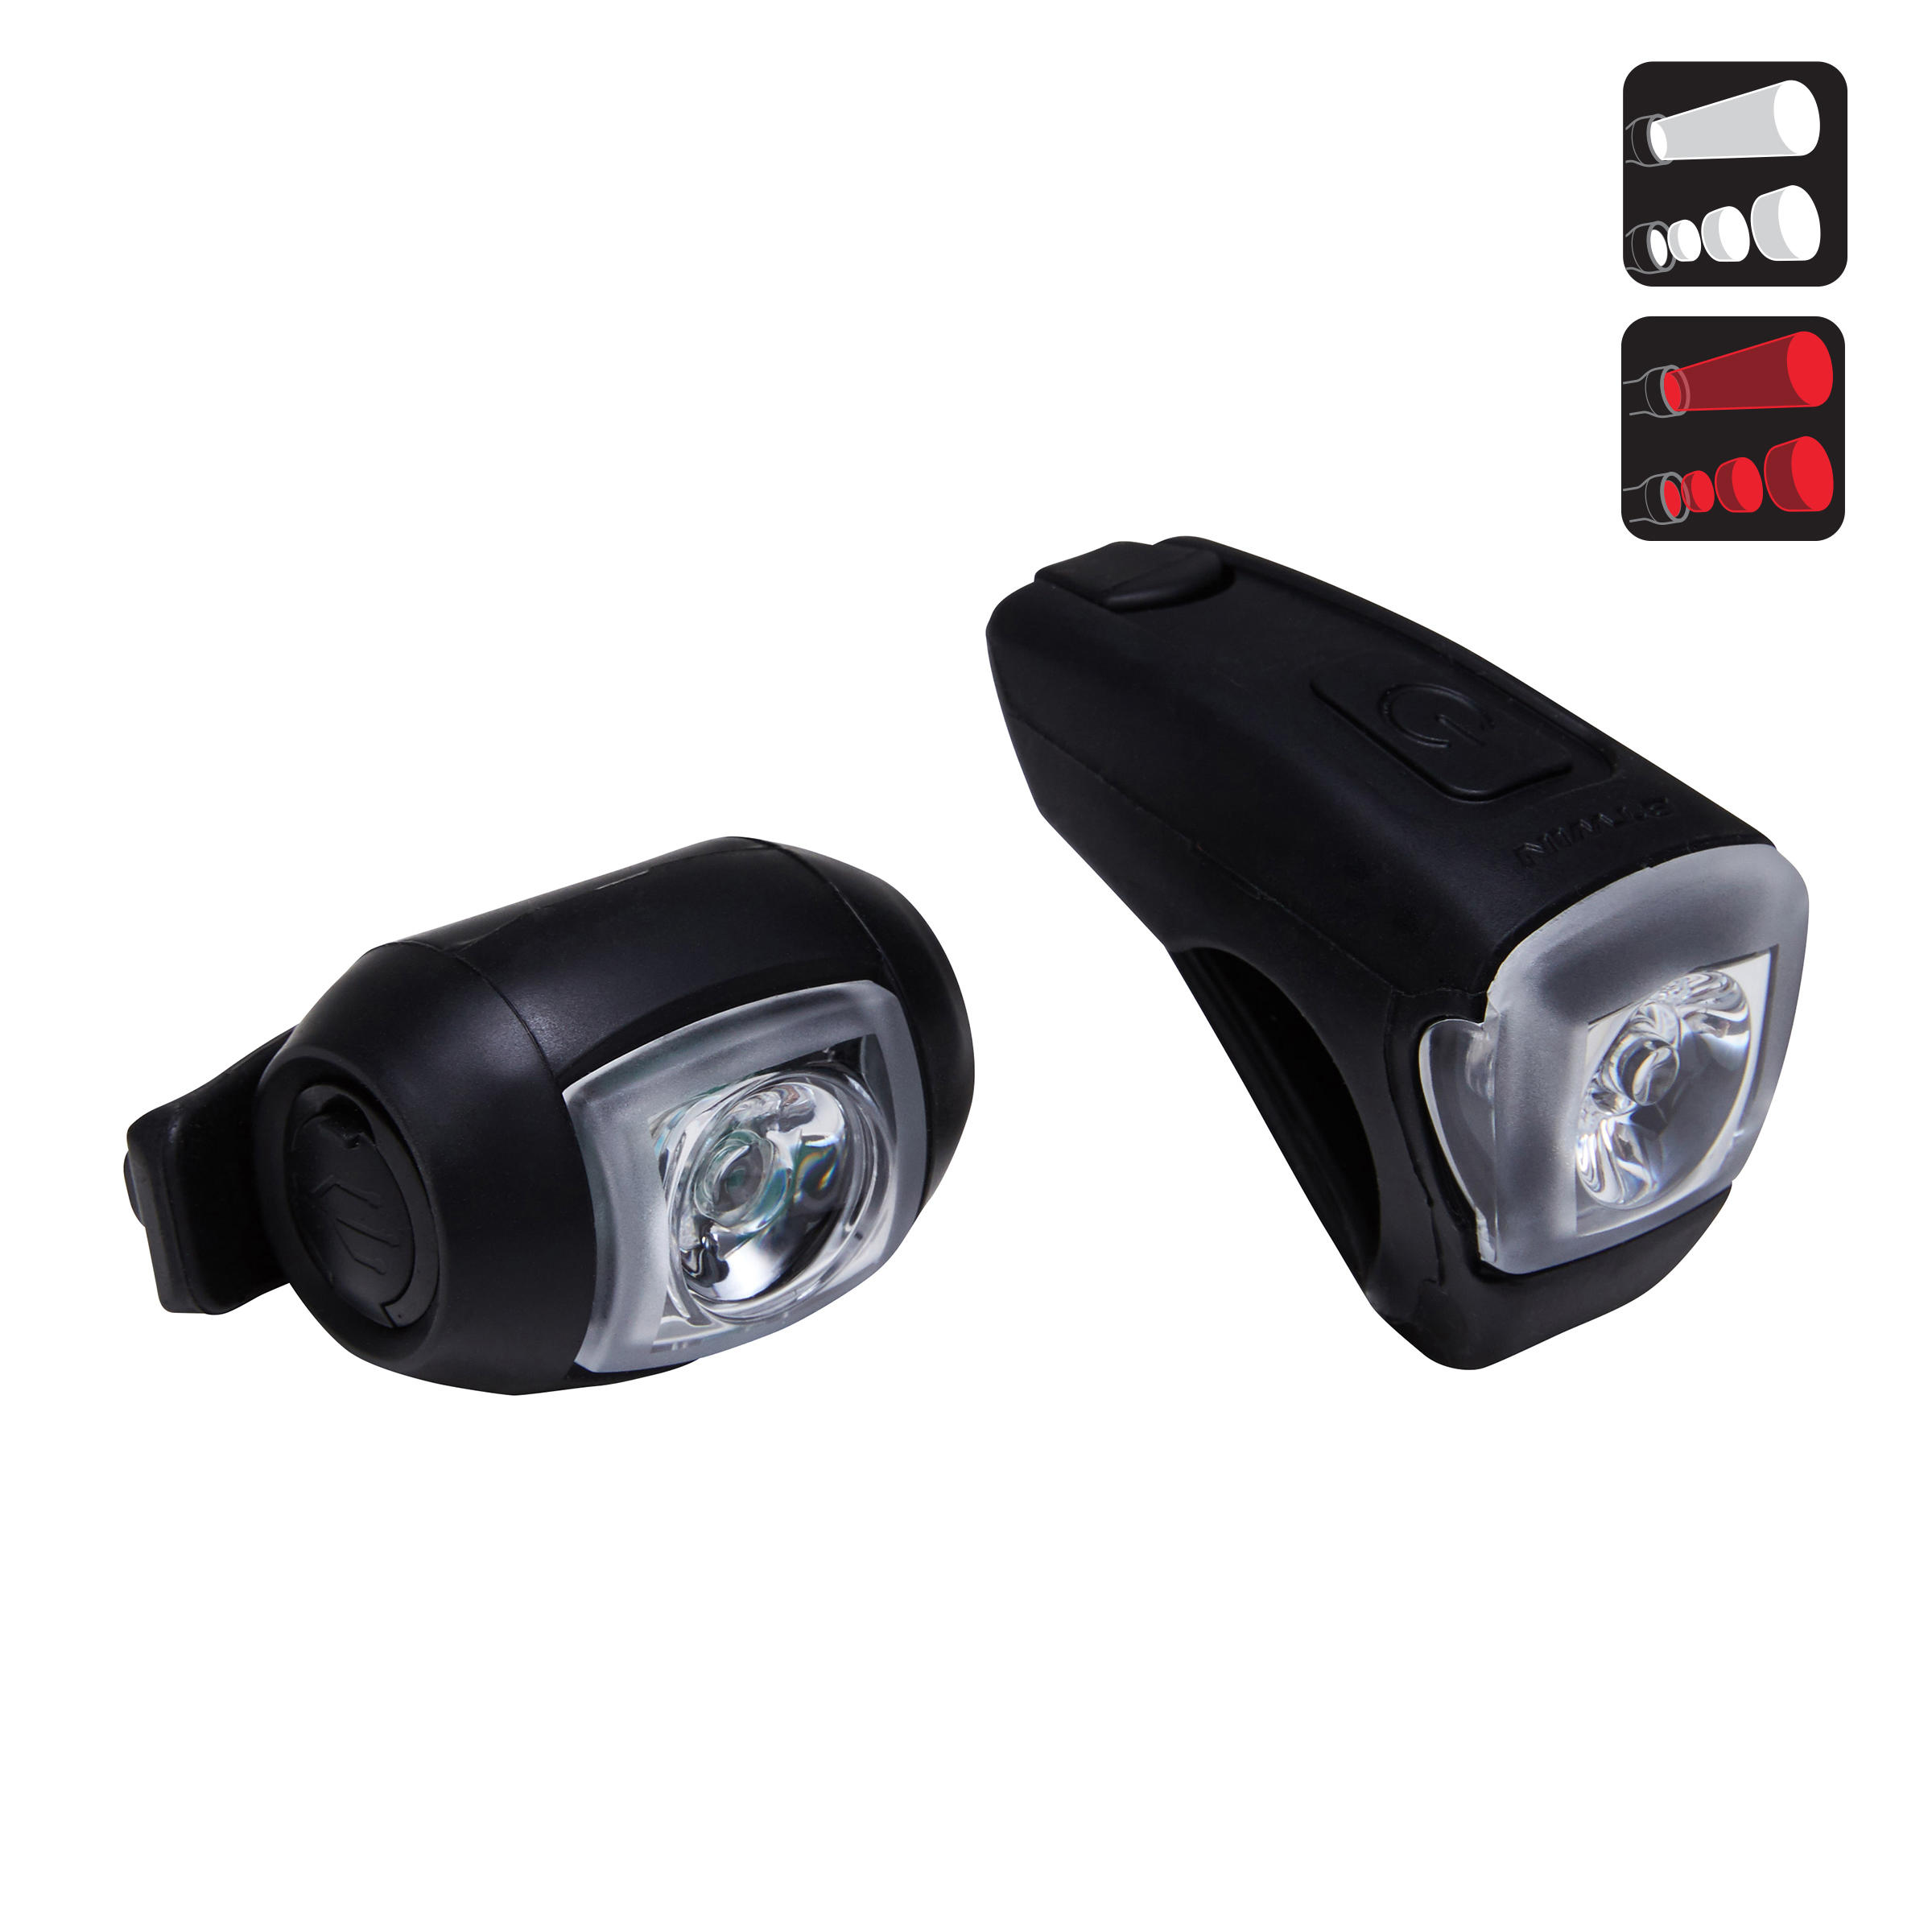 VIOO City 300 USB Bike LED Light Set - Black